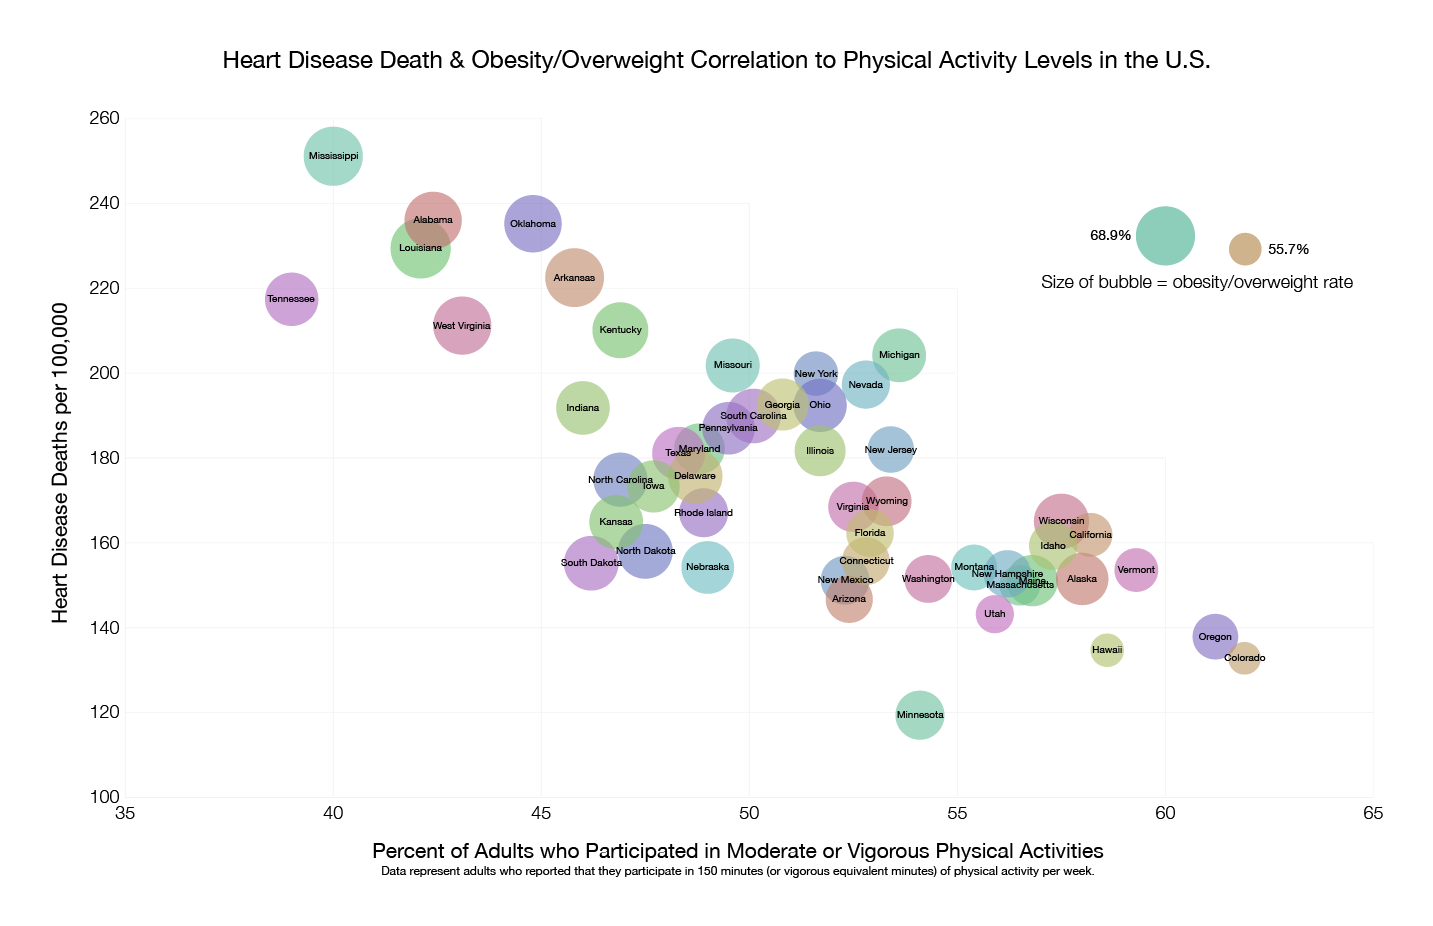 Visualizing Heart Disease Correlations in the US and EU